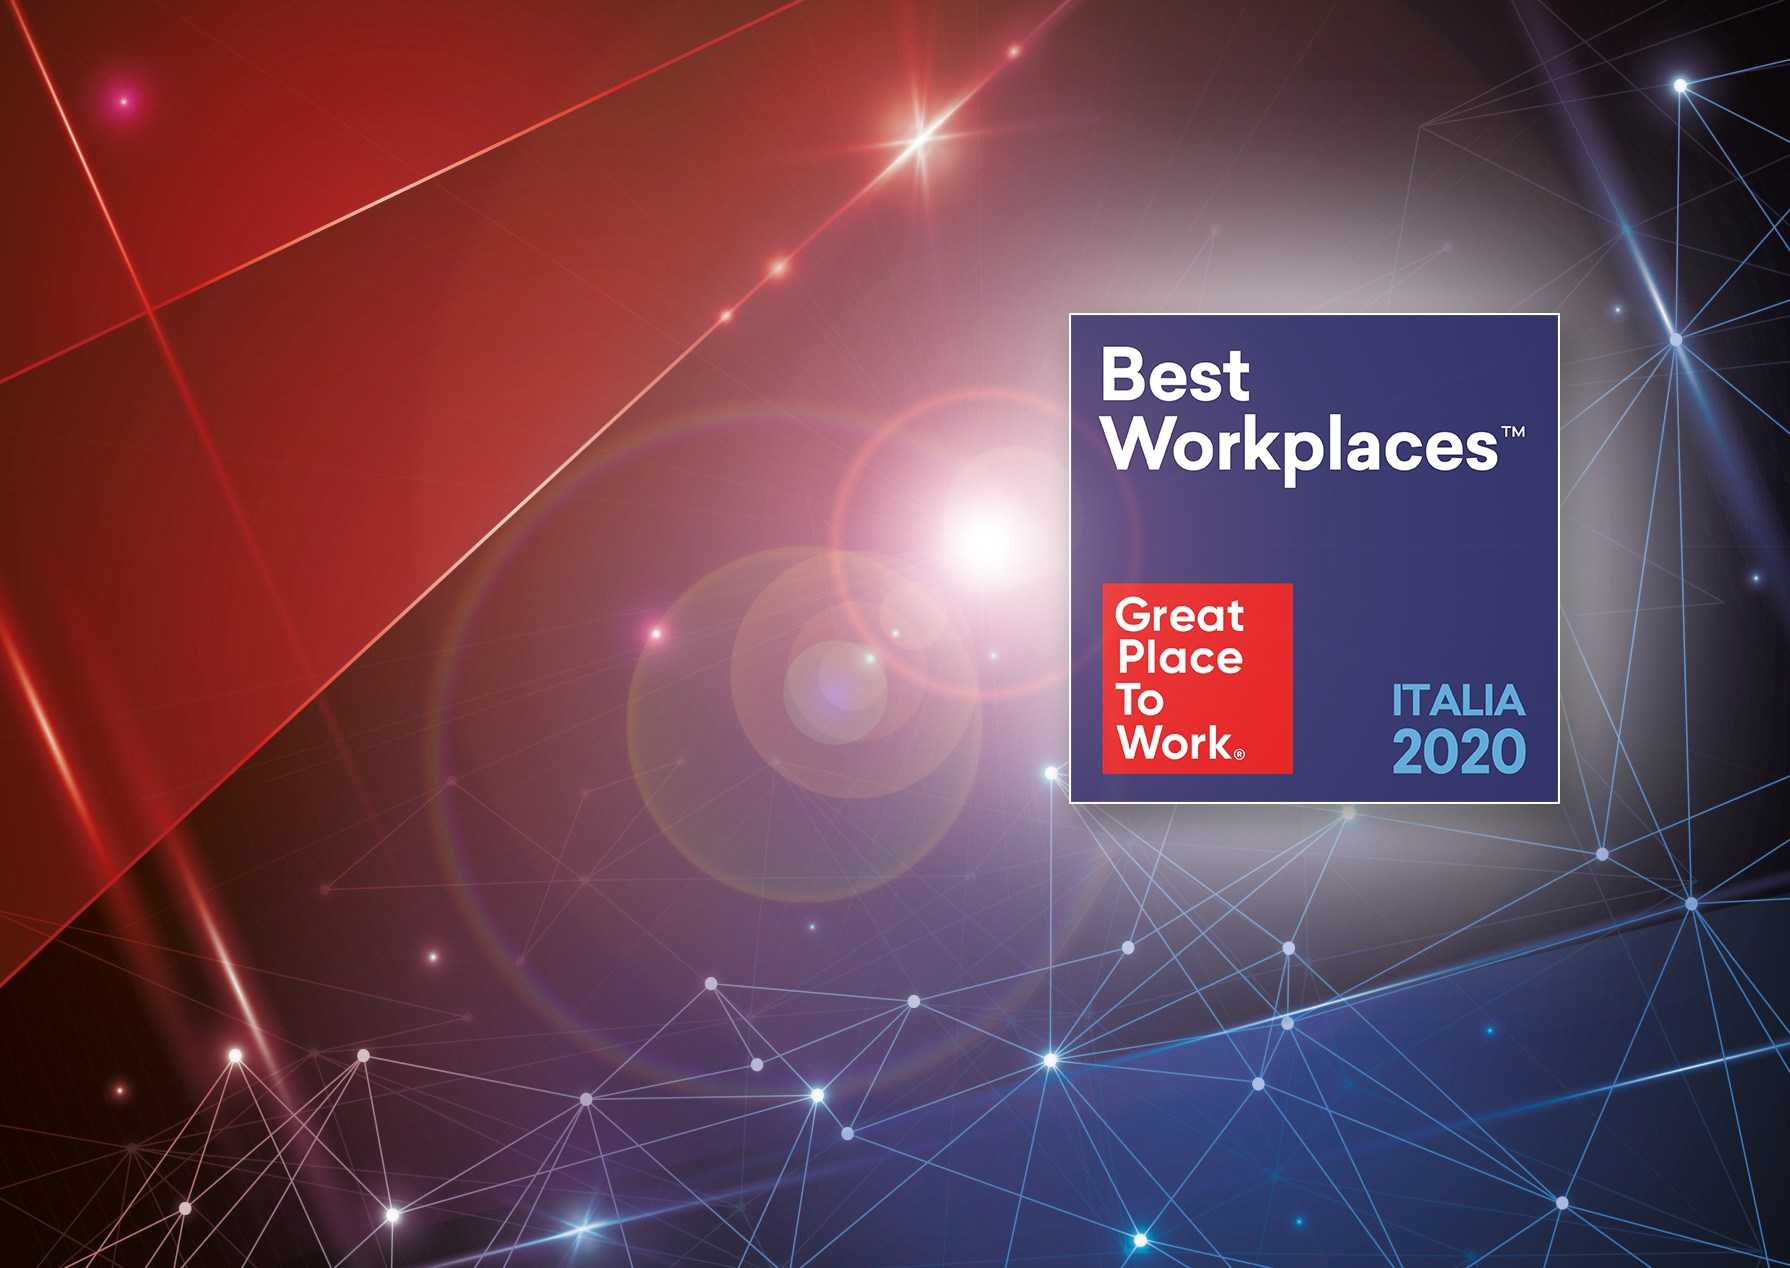 23 Aprile: Evento online Classifica Best Workplaces Italia 2020